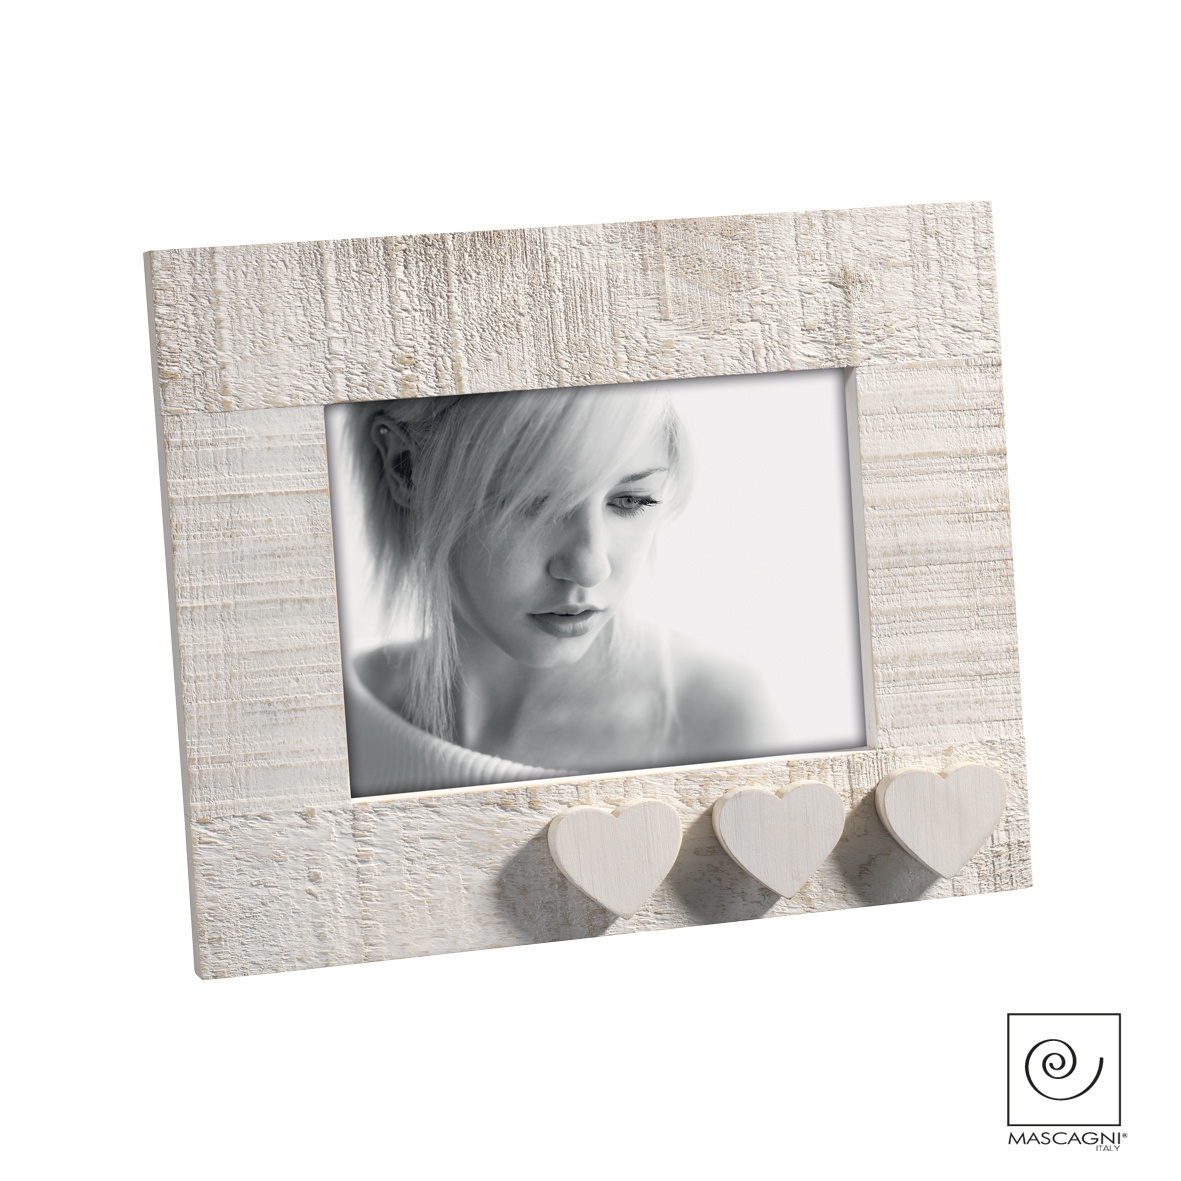 Art Mascagni A454 PHOTO FRAME 13X18